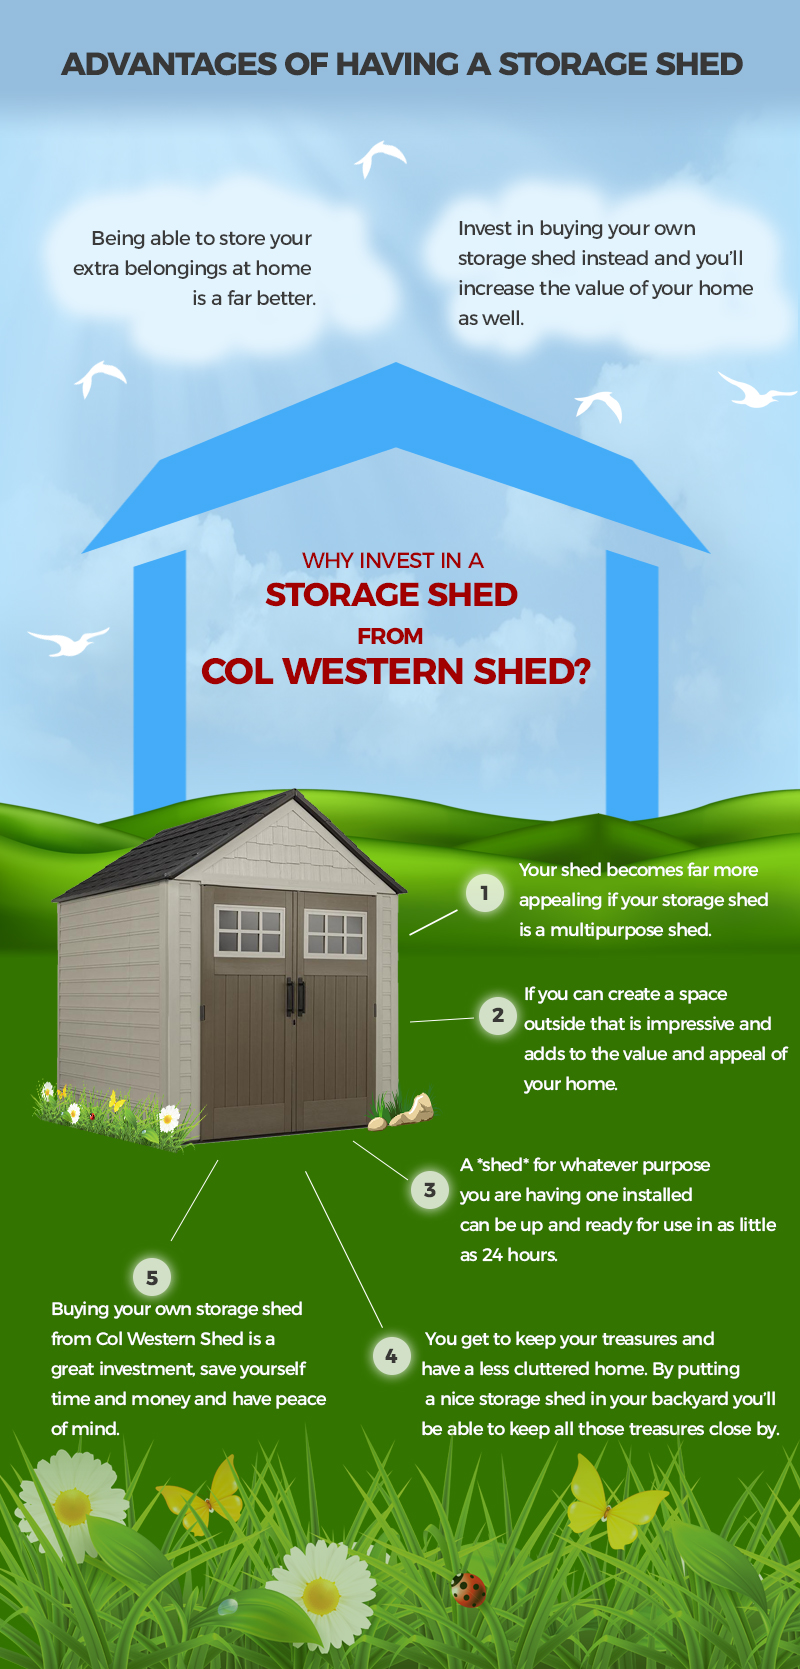 Advantages of Having a Storage Shed